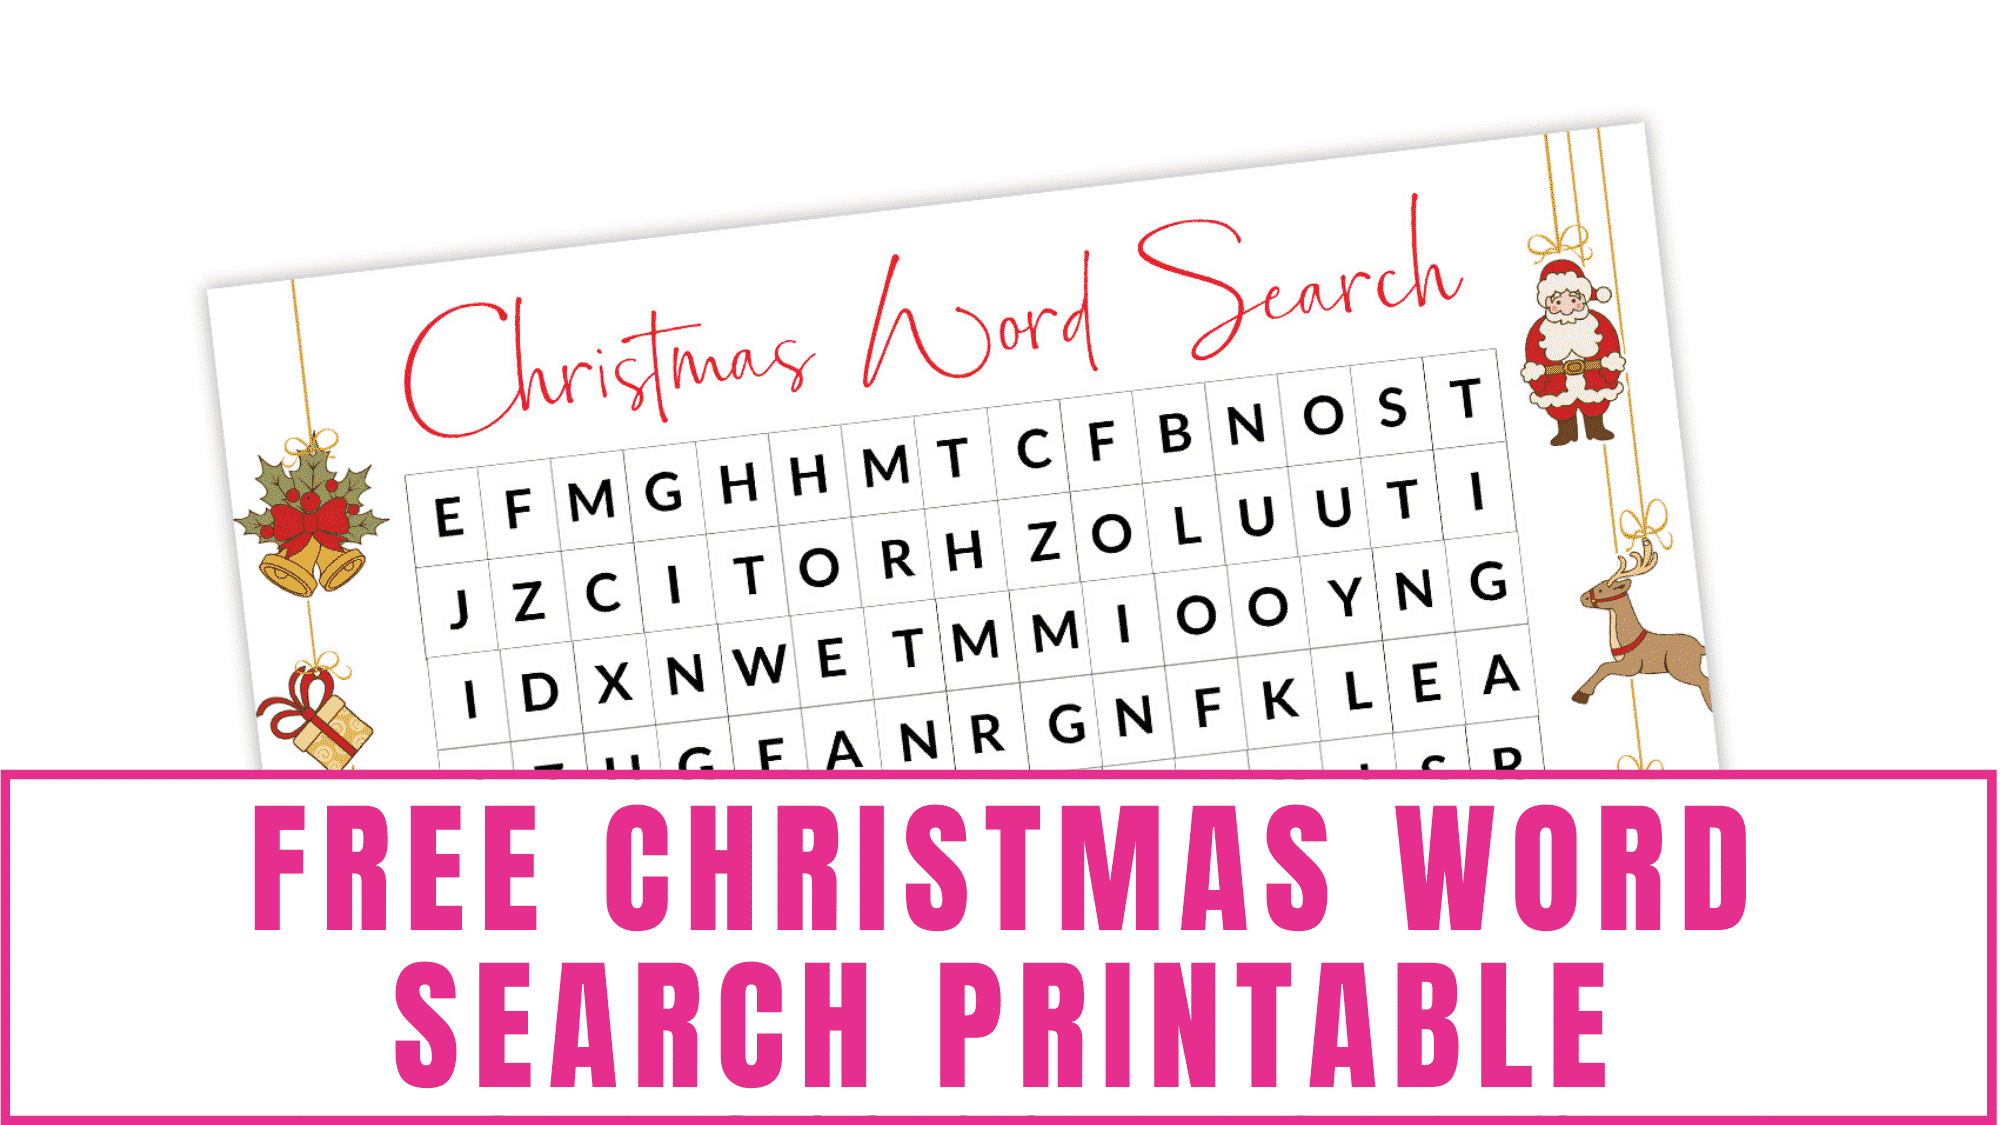 Looking for a fun Christmas activity for kids? This free Christmas word search printable is perfect because kids (and adults) will enjoy it and it's mess free.